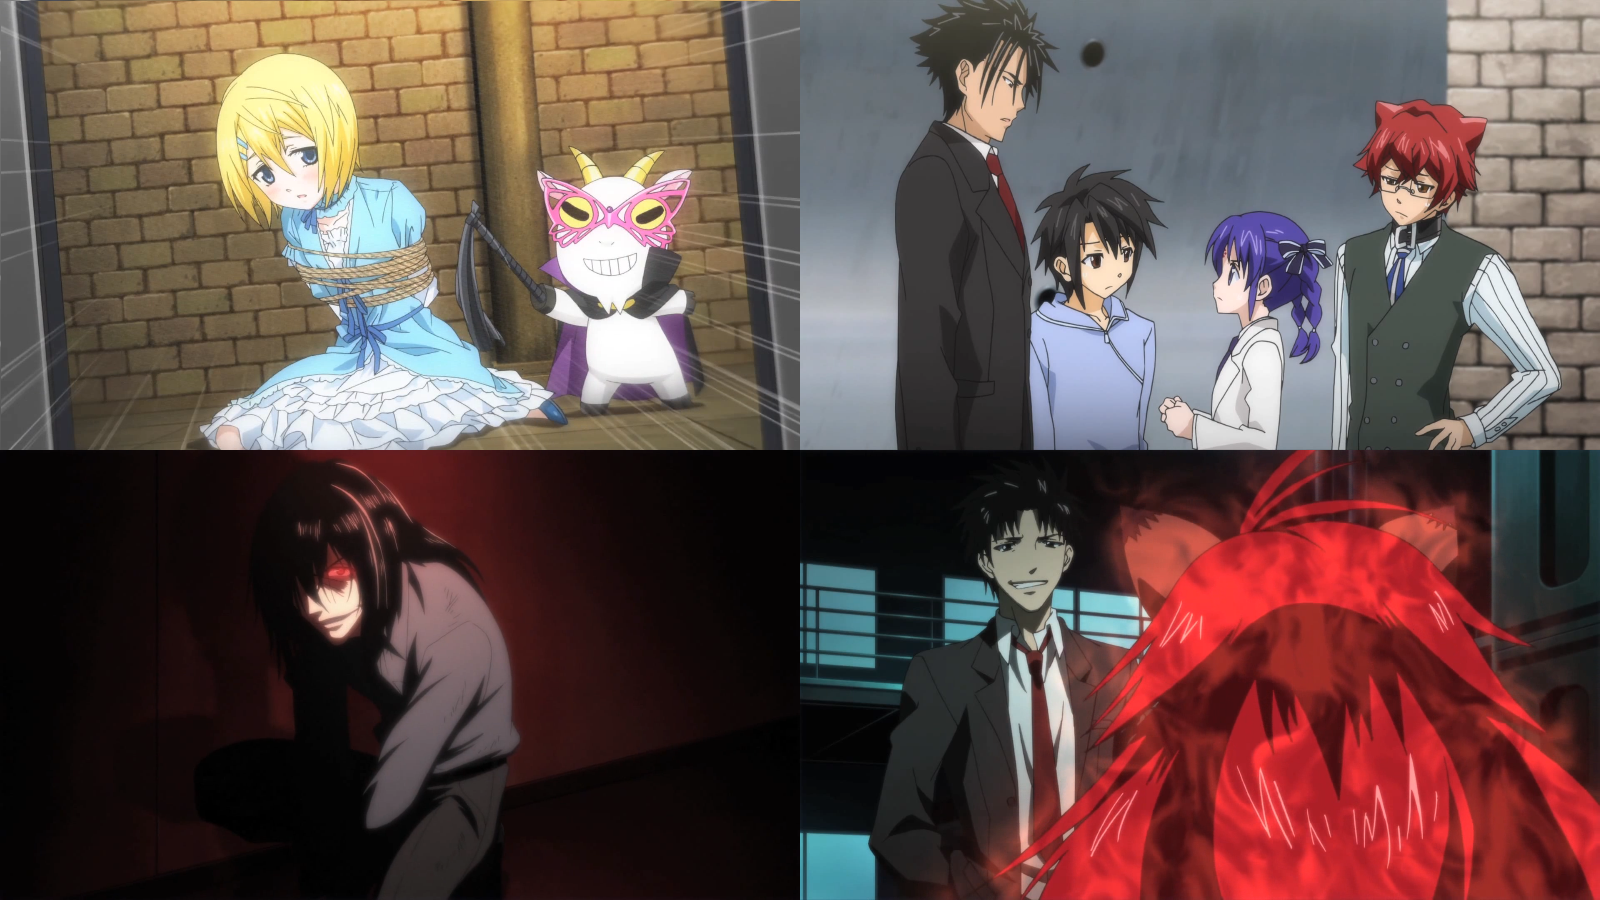 Anime Characters Kidnapped : Image episode cuticle detective inaba wiki